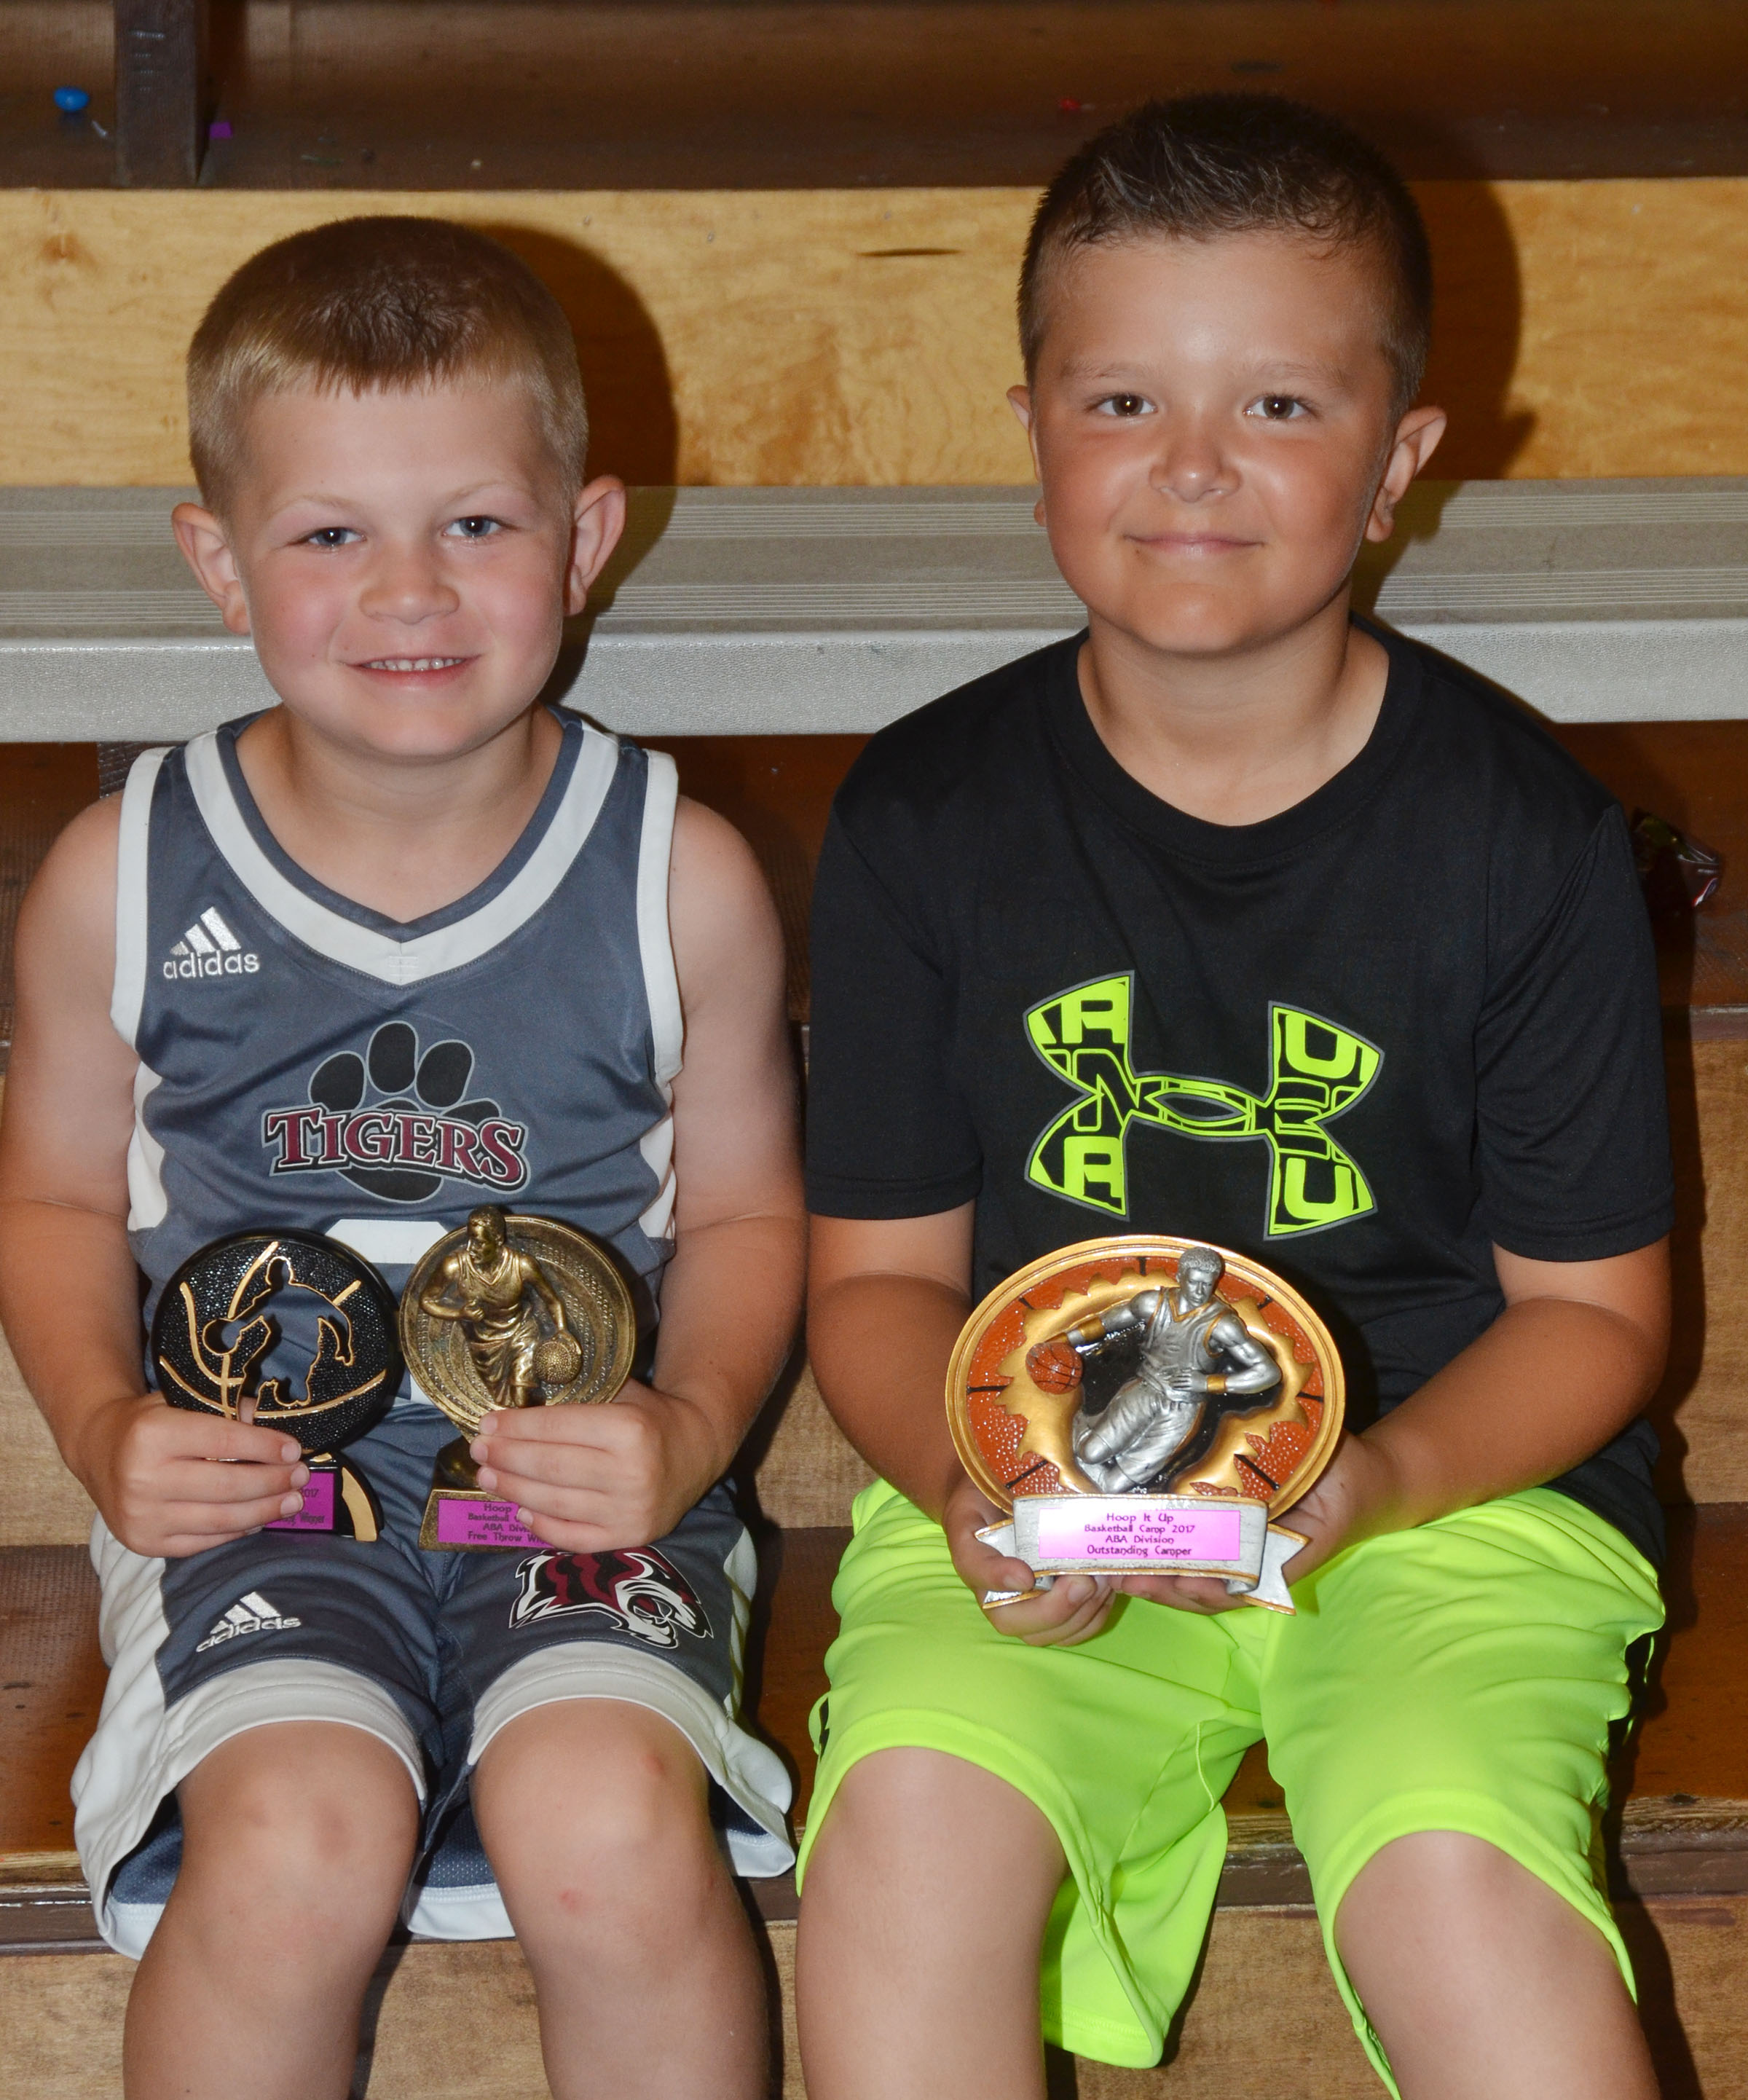 Griff Thomas, at left, won camp awards in the ABA division for free throws and competition shooting. Cayton Lawhorn won the outstanding camper award.